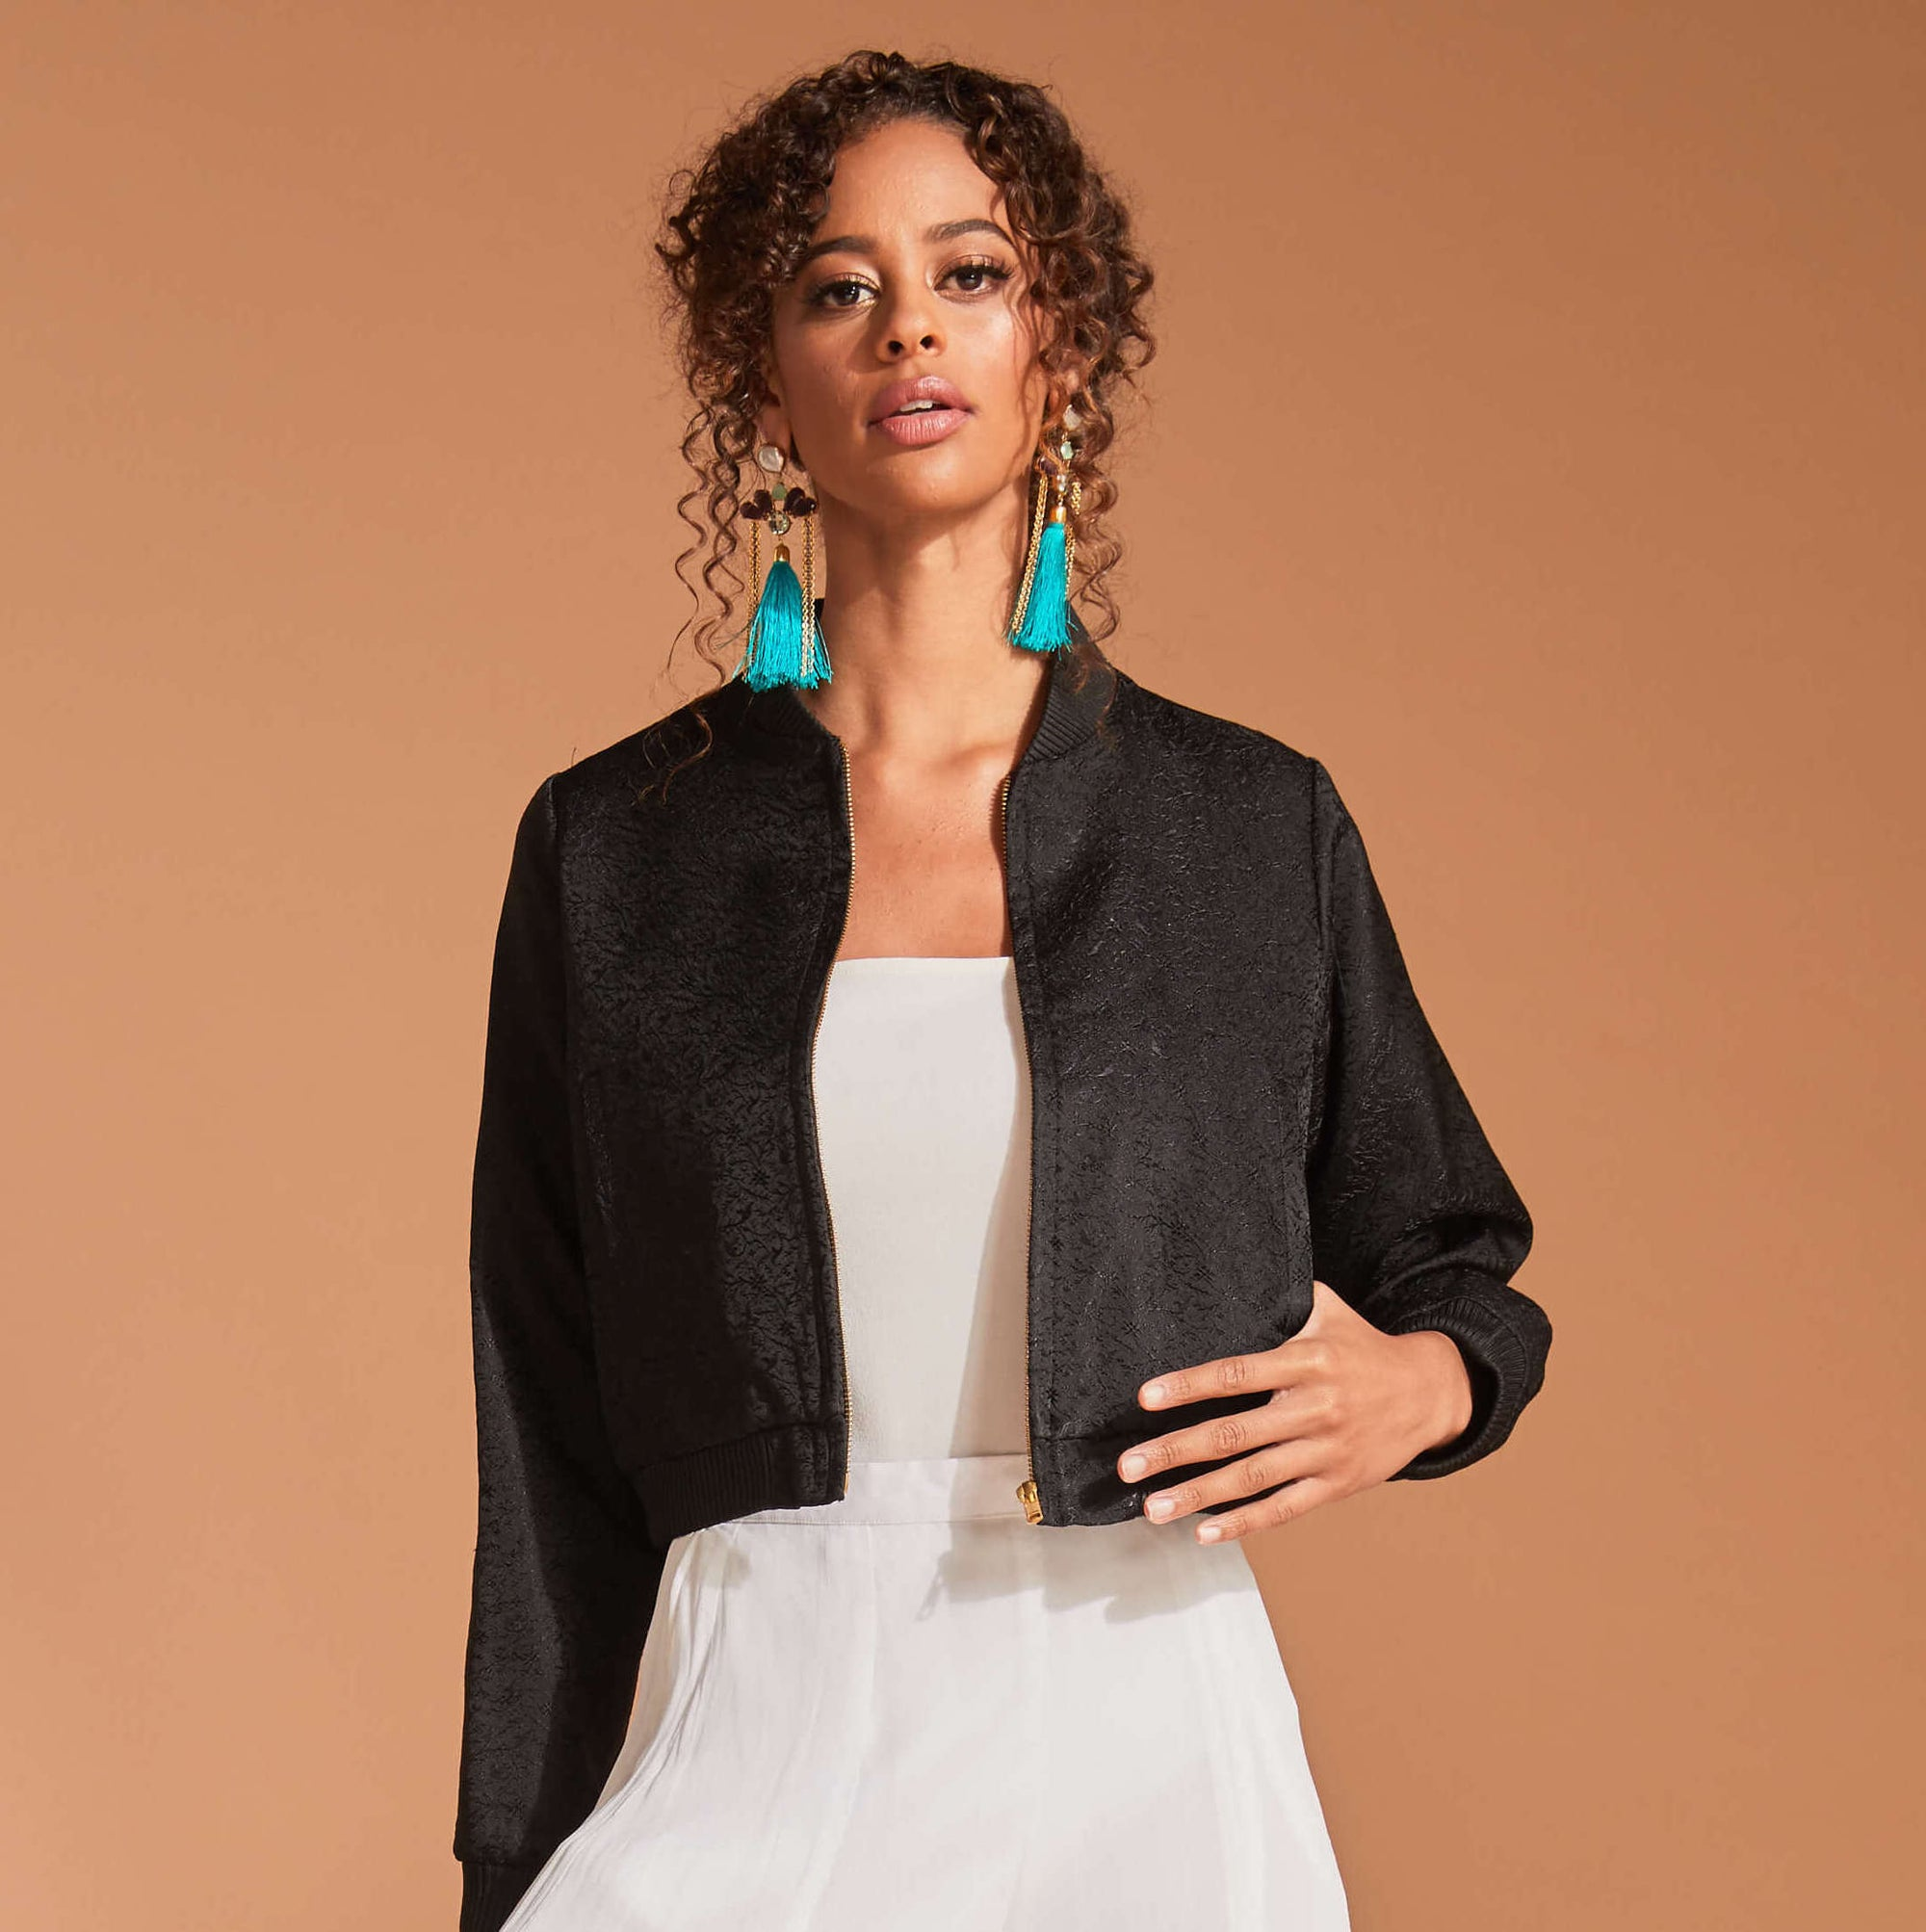 Black bomber jacket with turquoise earrings